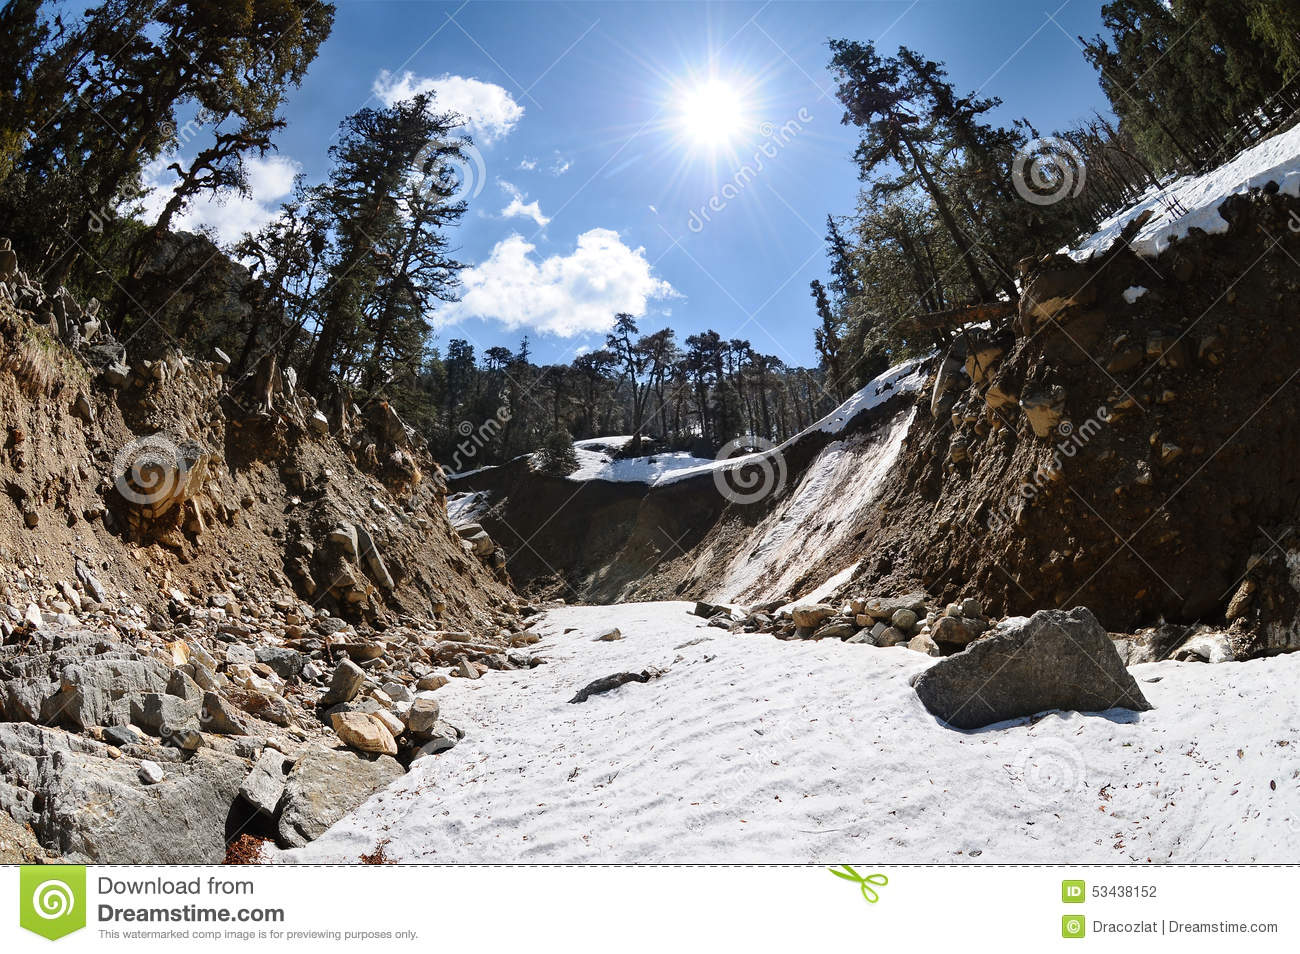 Mountain River Bed In Steep Canyon Stock Photo.